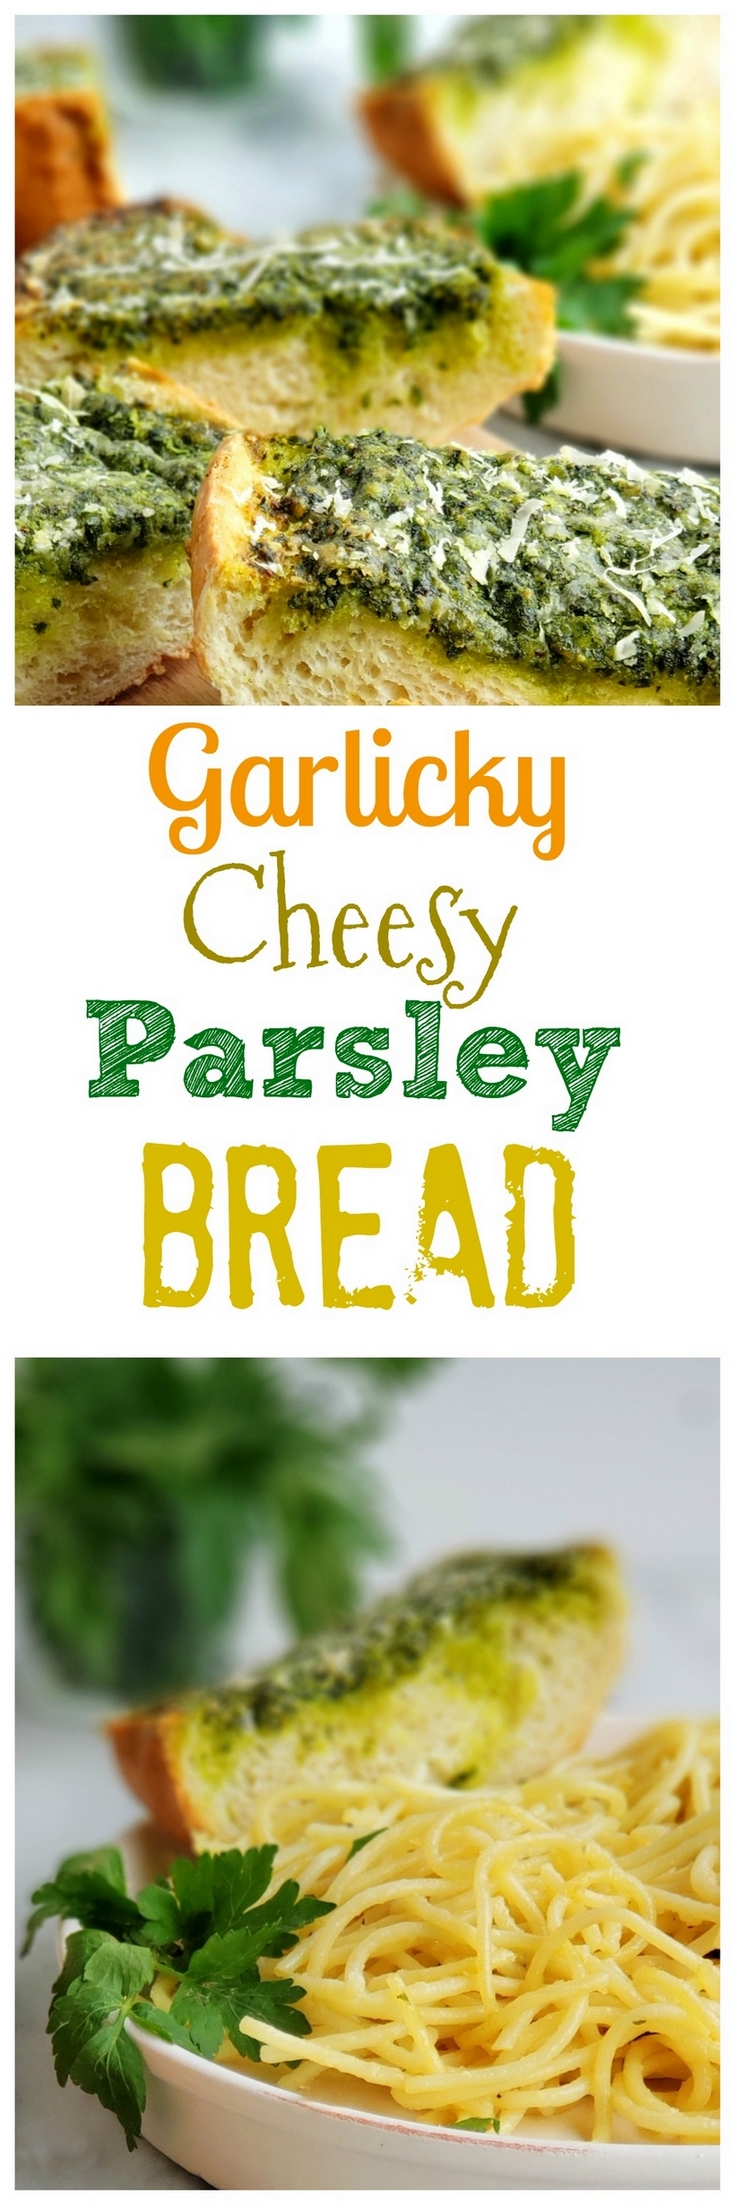 Use up your leftover parsley with this deliciously, flavorful Garlicky, Cheesy Parsley Bread. It's the perfect side dish for a bowl of pasta.#noblepig #parsley #garlicbread via @cmpollak1